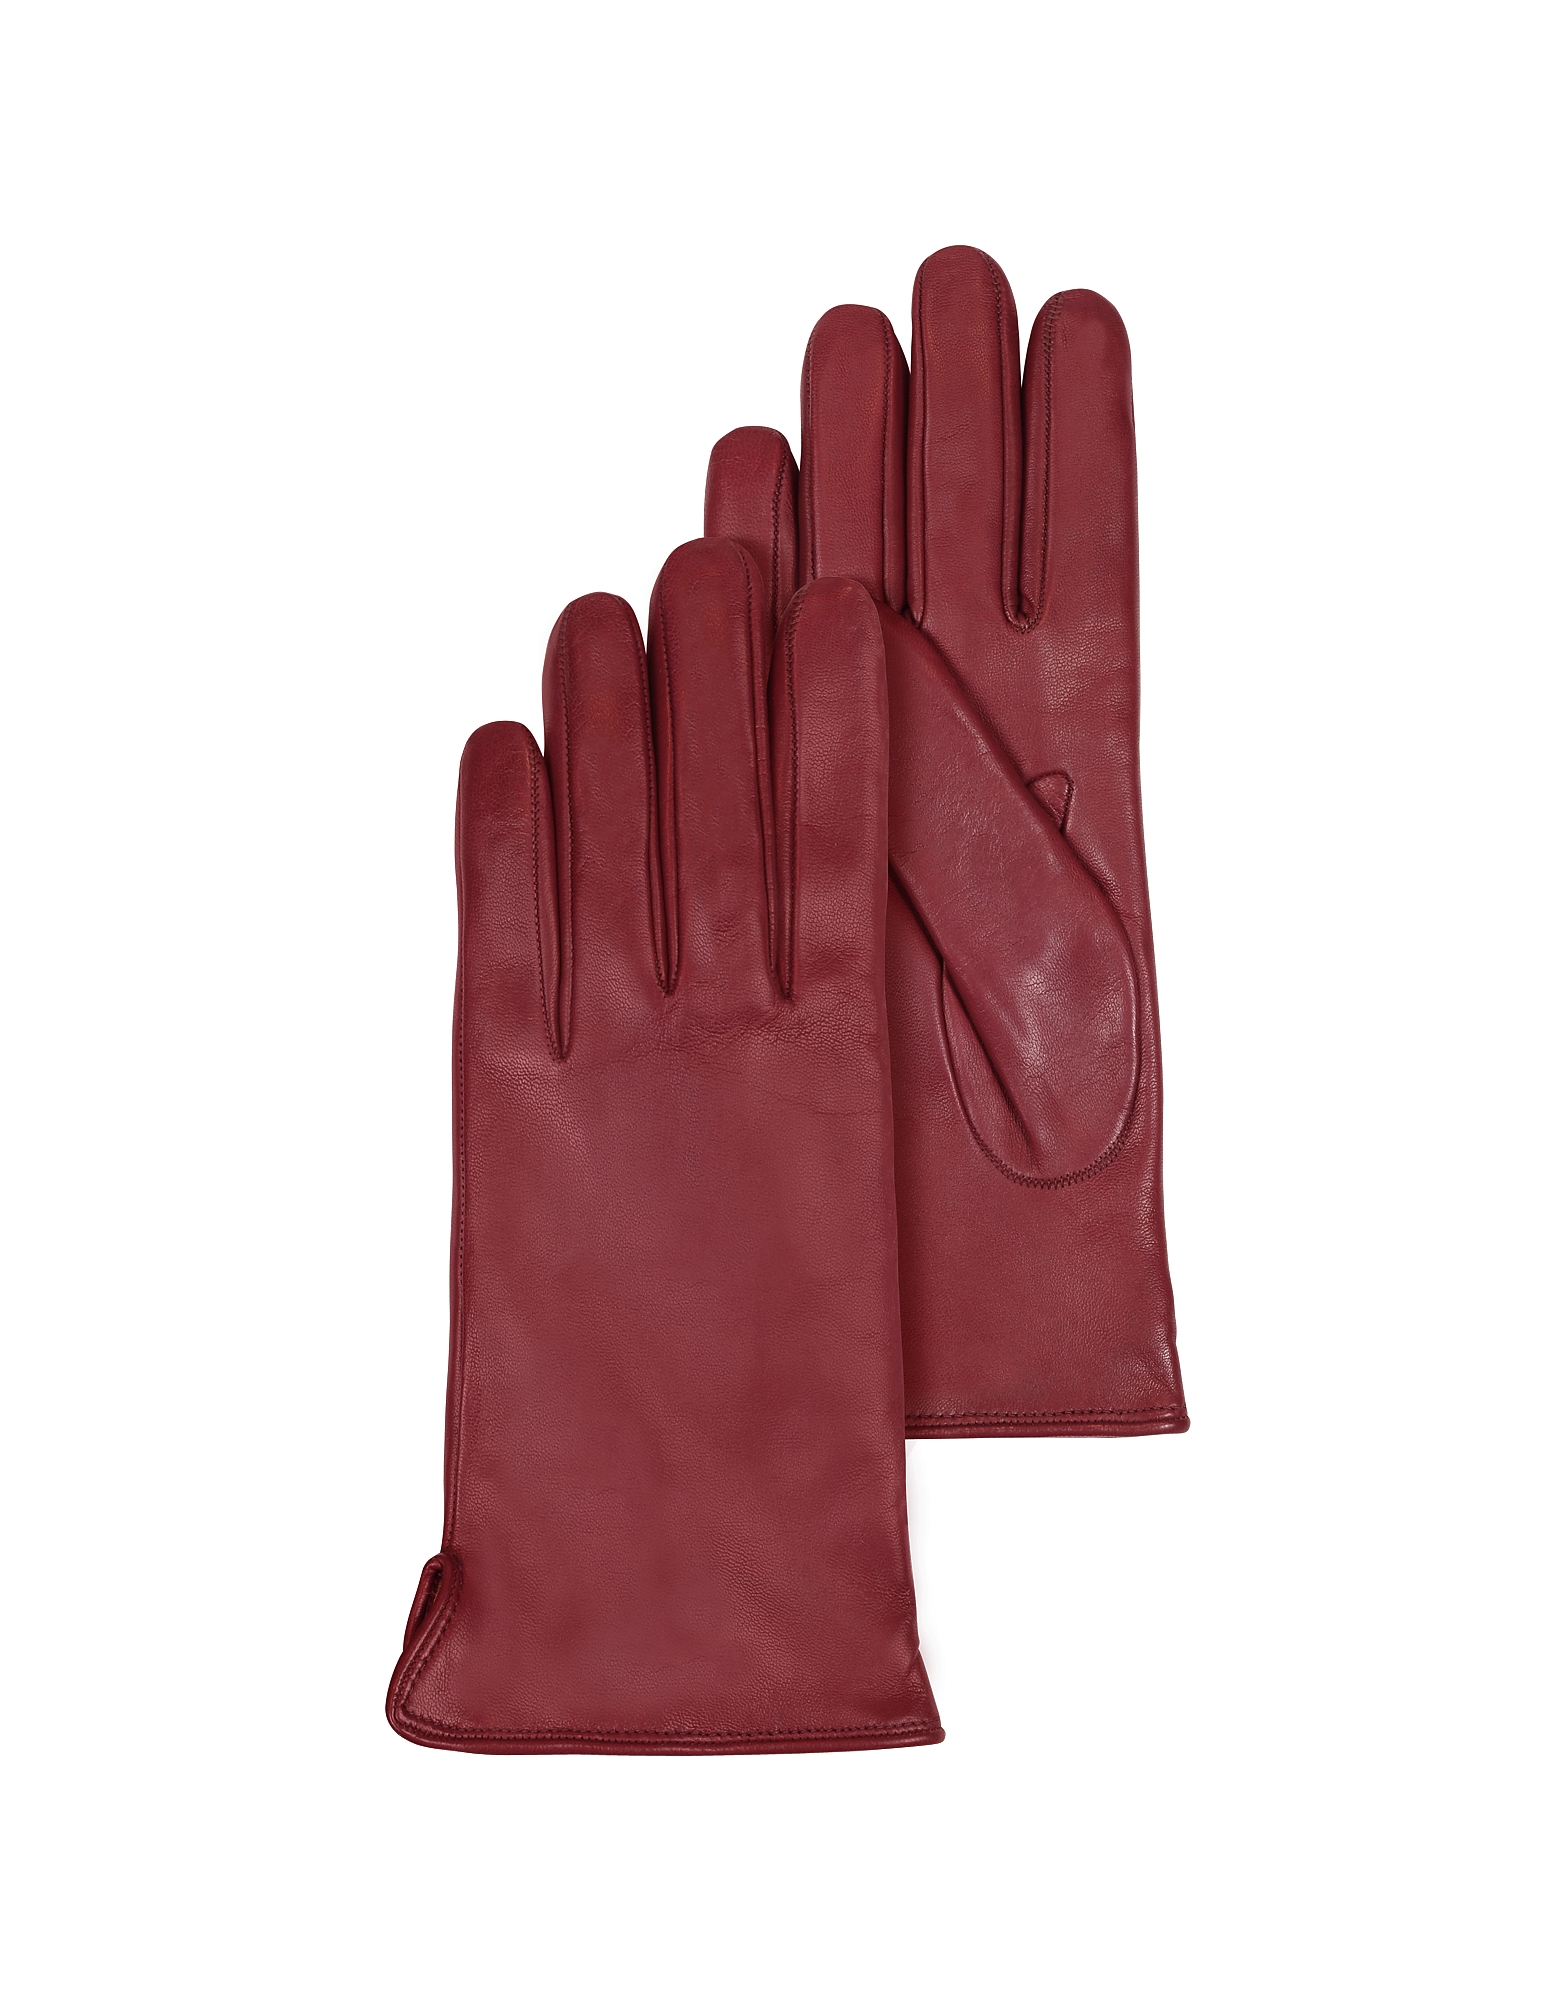 Forzieri Women's Gloves, Burgundy Leather Women's Gloves w/Cashmere Lining